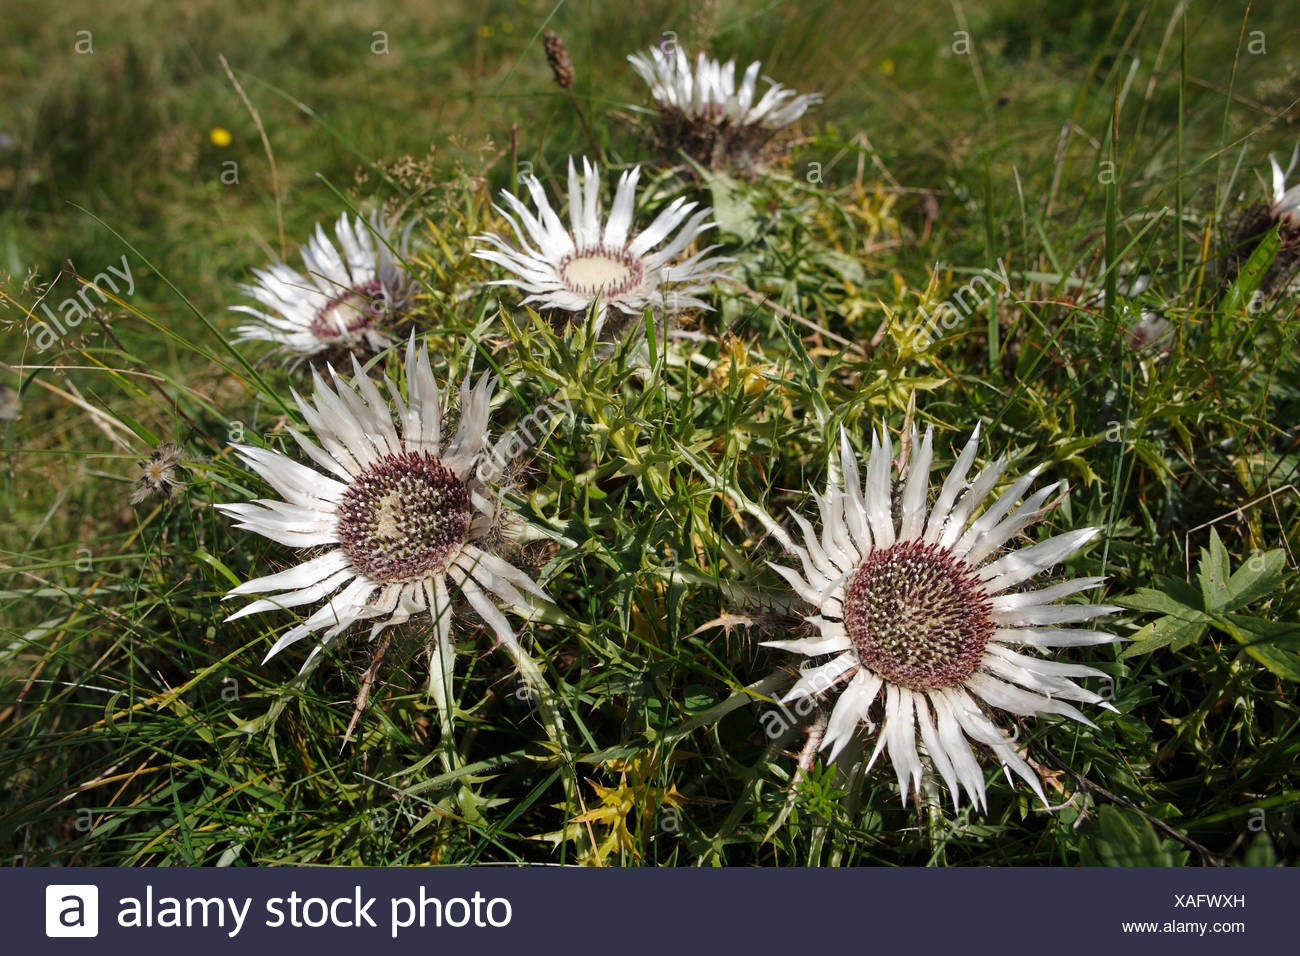 Stemless carline thistle, Dwarf carline thistle, Silver thistle, Carlina acaulis, Bavaria, Germany - Stock Image